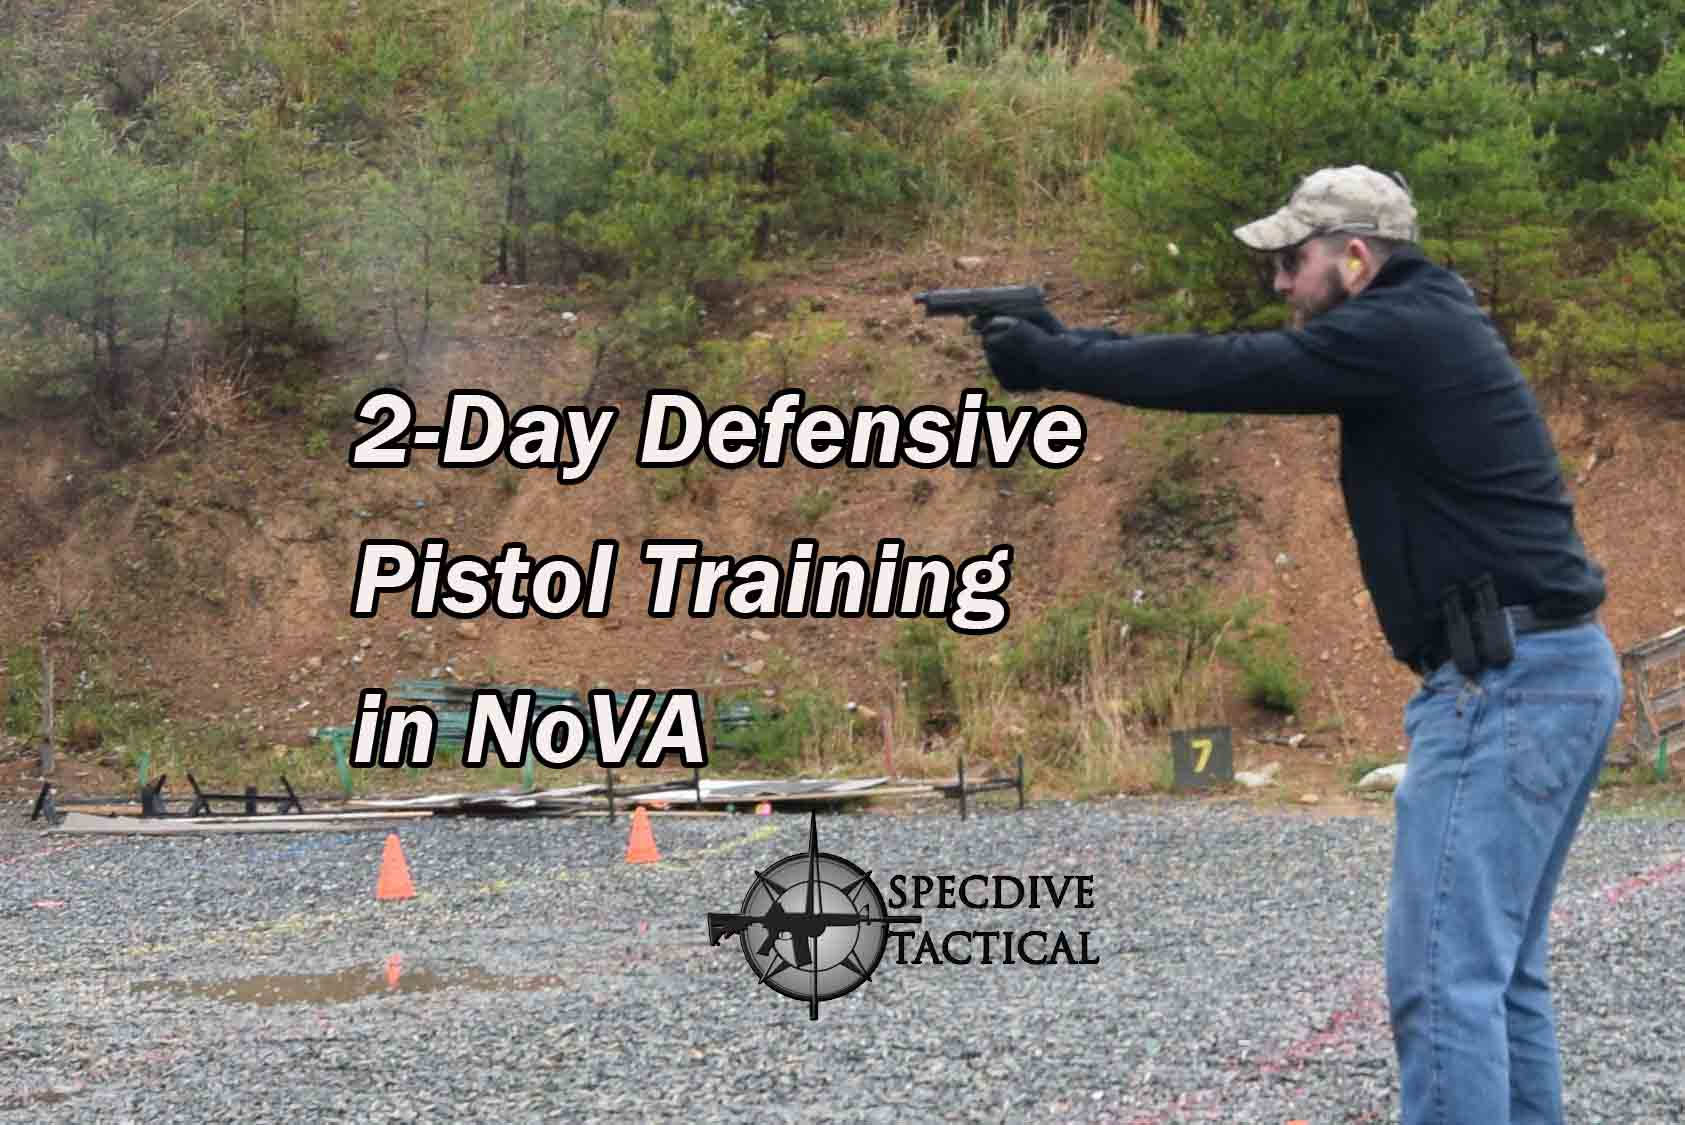 SpecDive Tactical Training Events – Firearms Training and